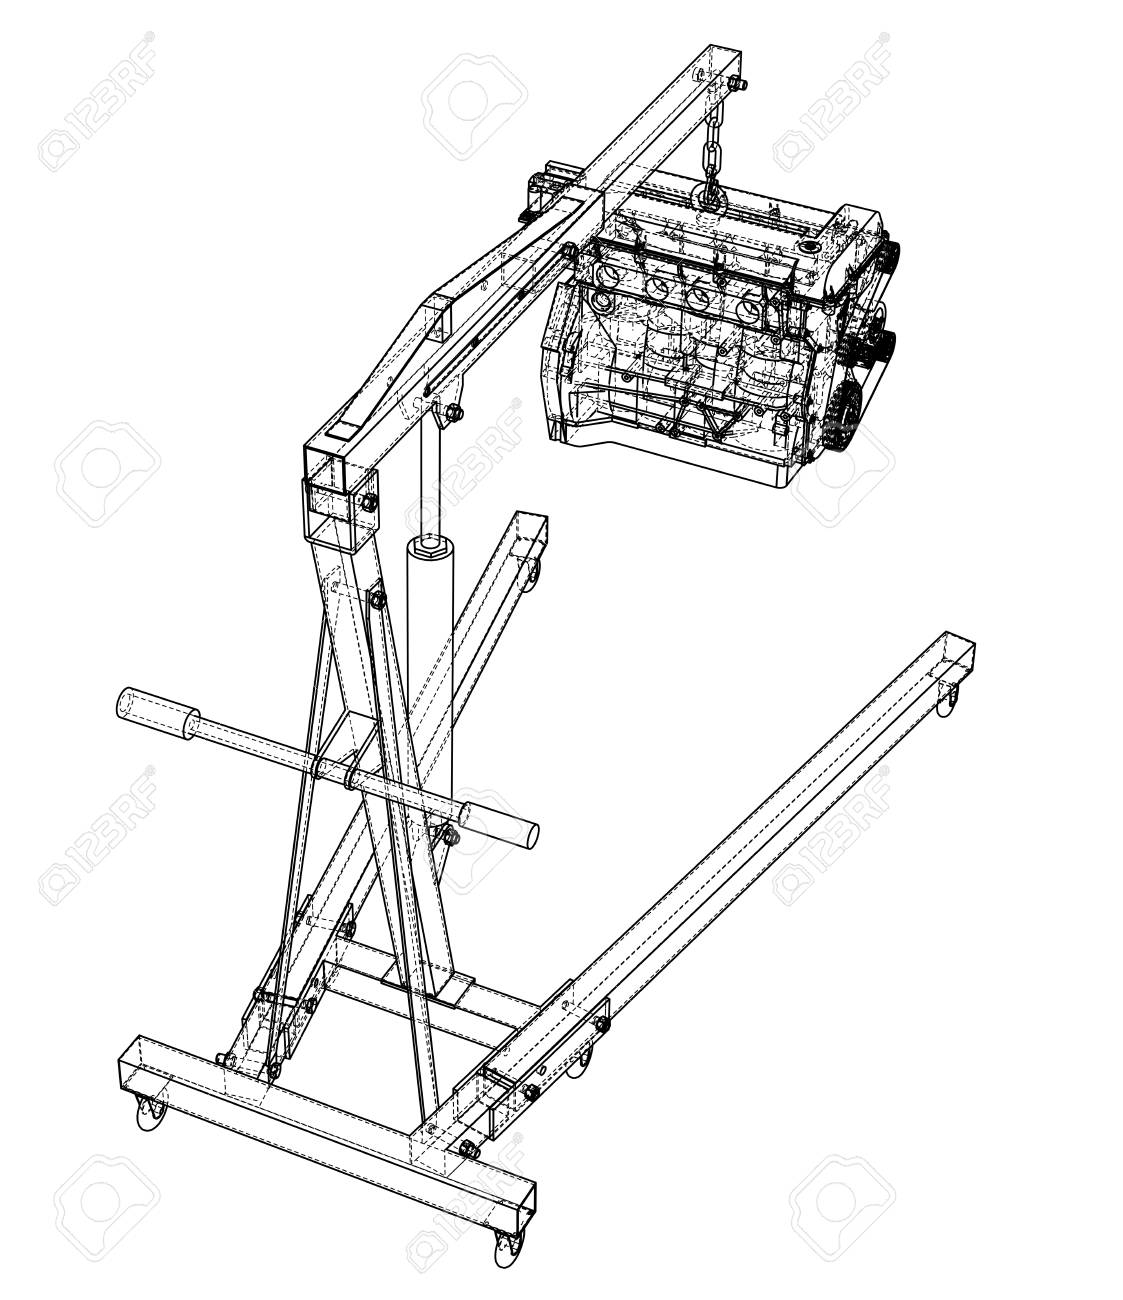 Engine Hoist With Engine Outline Stock Photo, Picture And Royalty Free  Image. Image 118774491.123RF.com